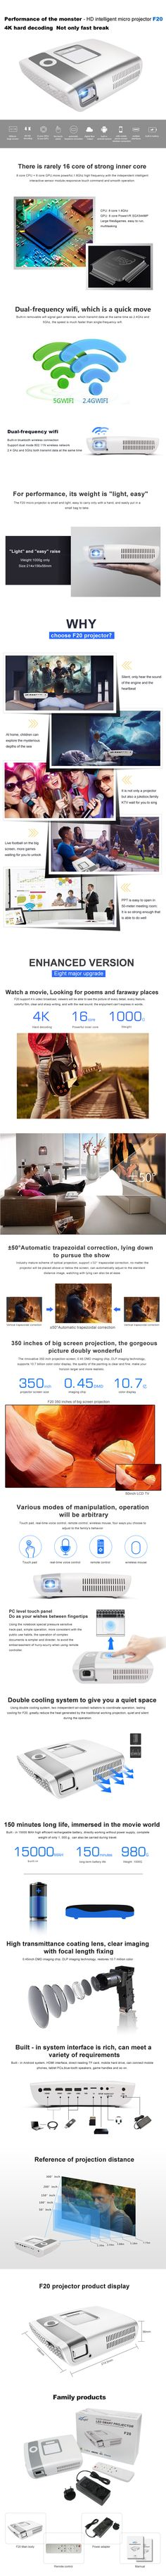 Touch Screen IWB Projectors MINI Full HD 1080p Intelligent Micro Projector LED Android WIFI Portable Projection